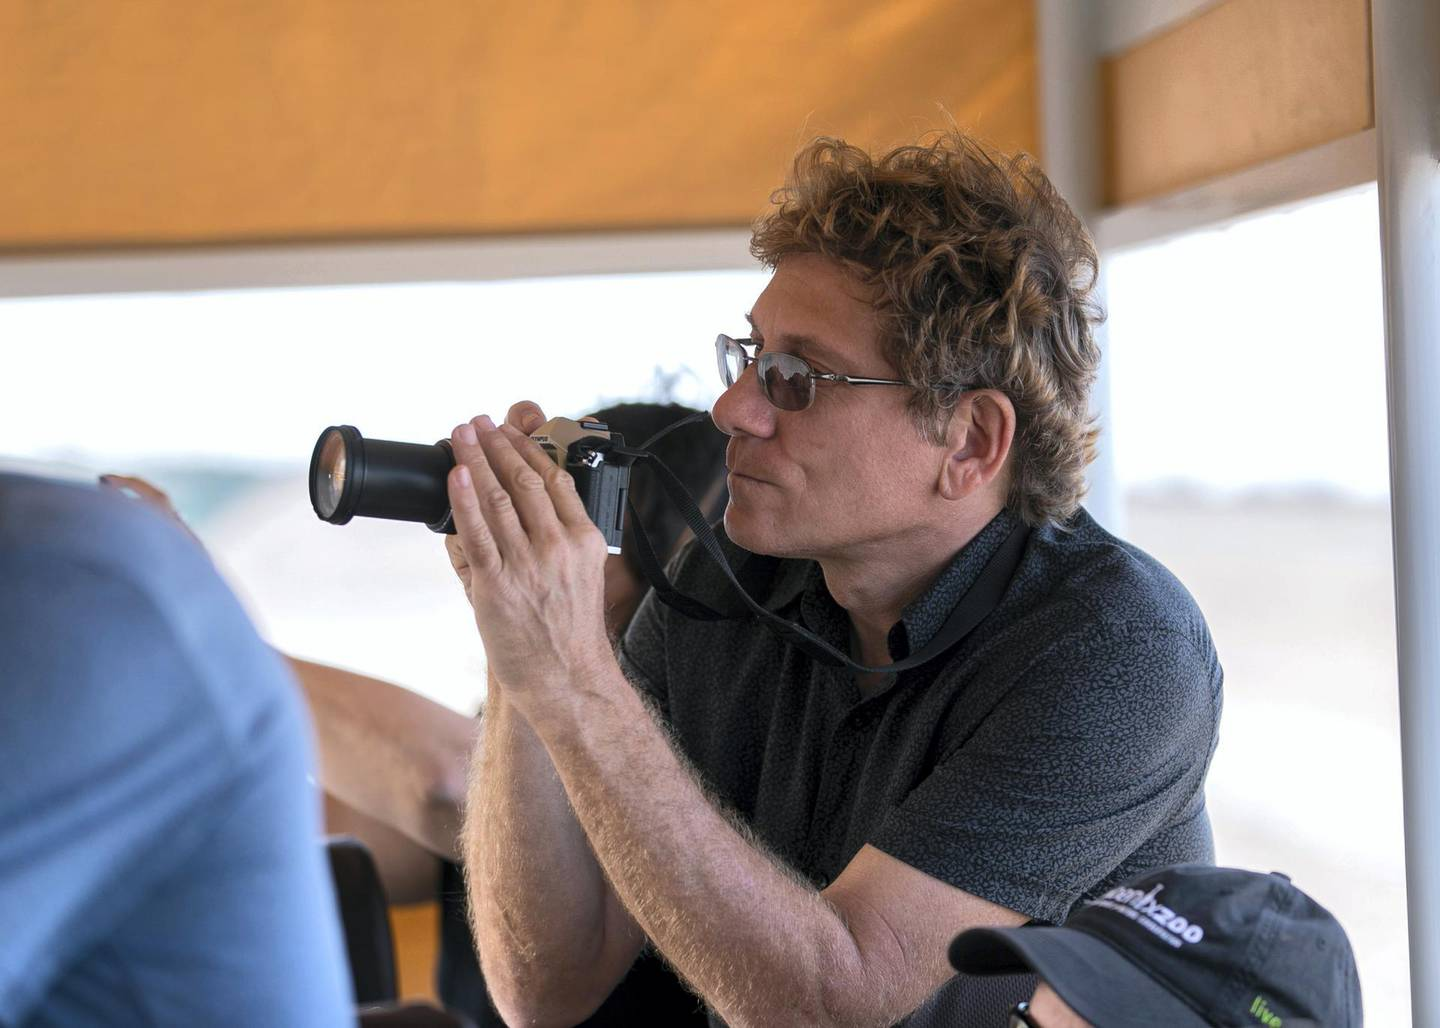 Abu DHABI, UNITED ARAB EMIRATES. 17 FEBRUARY 2019. Andy Bruckner, Research Coordinator, Florida Keys National Sanctuary. Cultural Diplomacy Tour for a delegation of conservation experts from the United States, visit Sir Bani Yas.(Photo: Reem Mohammed/The National)Reporter: Anna ZachariasSection: